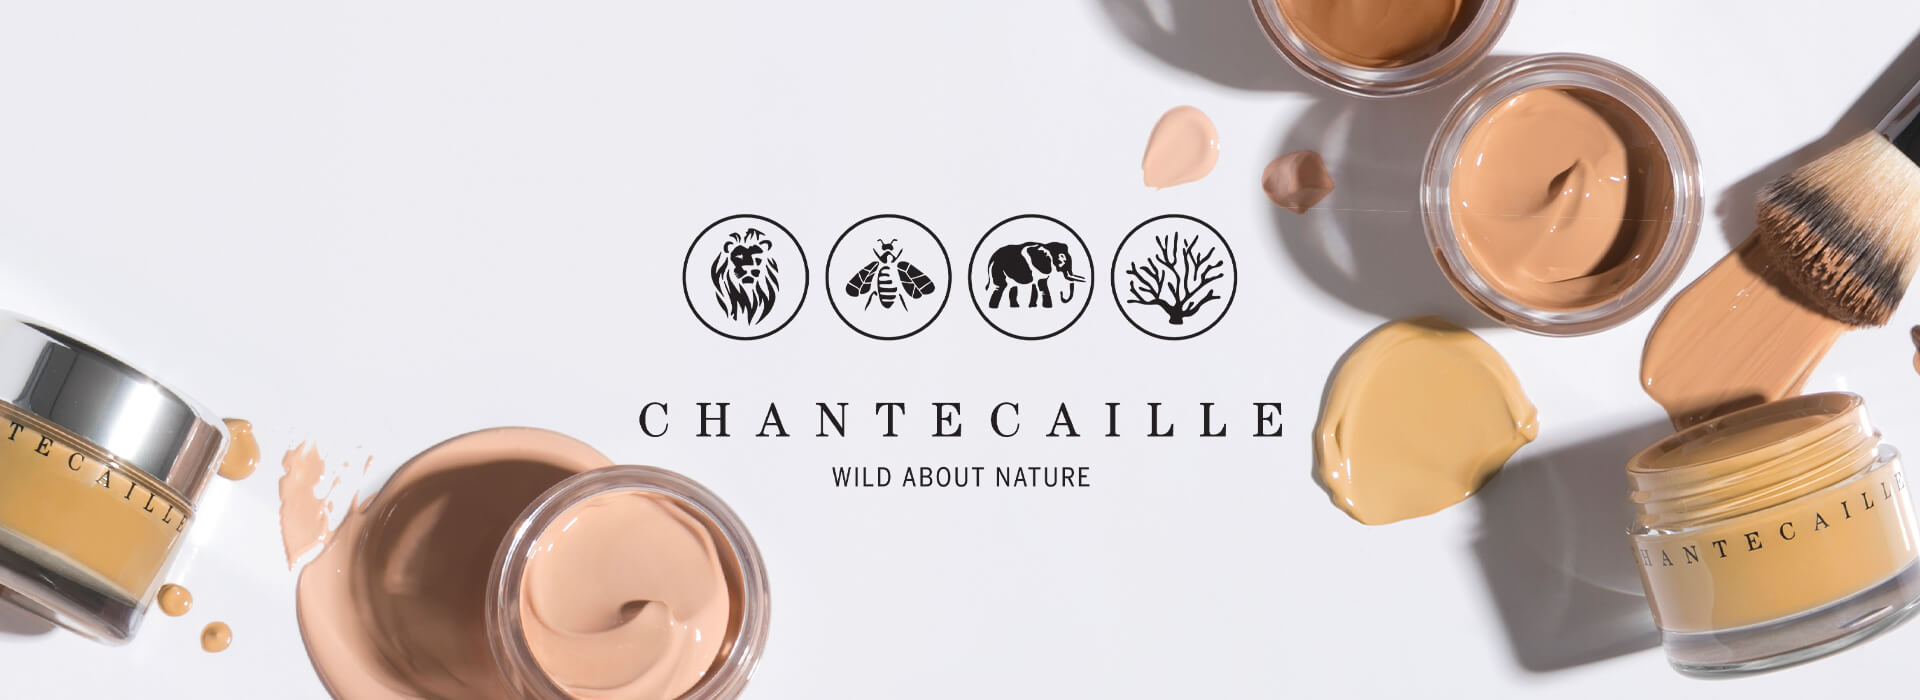 View all Chantecaille